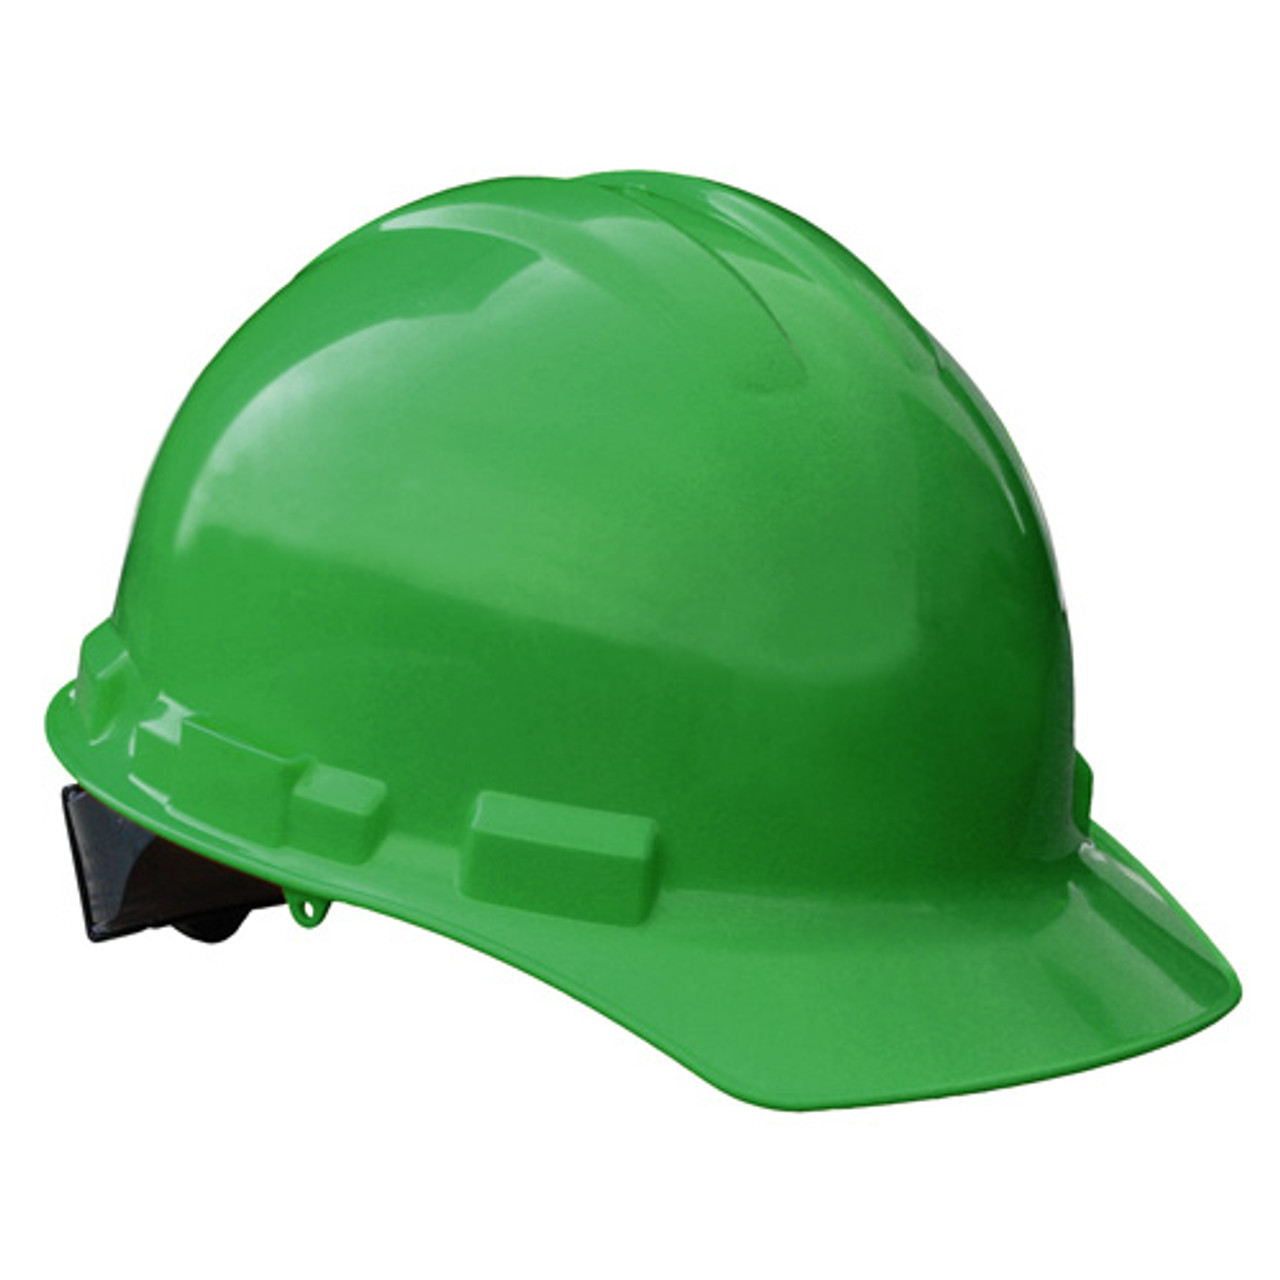 Green Radians Hard Hat with Ratchet Suspension Made in The USA